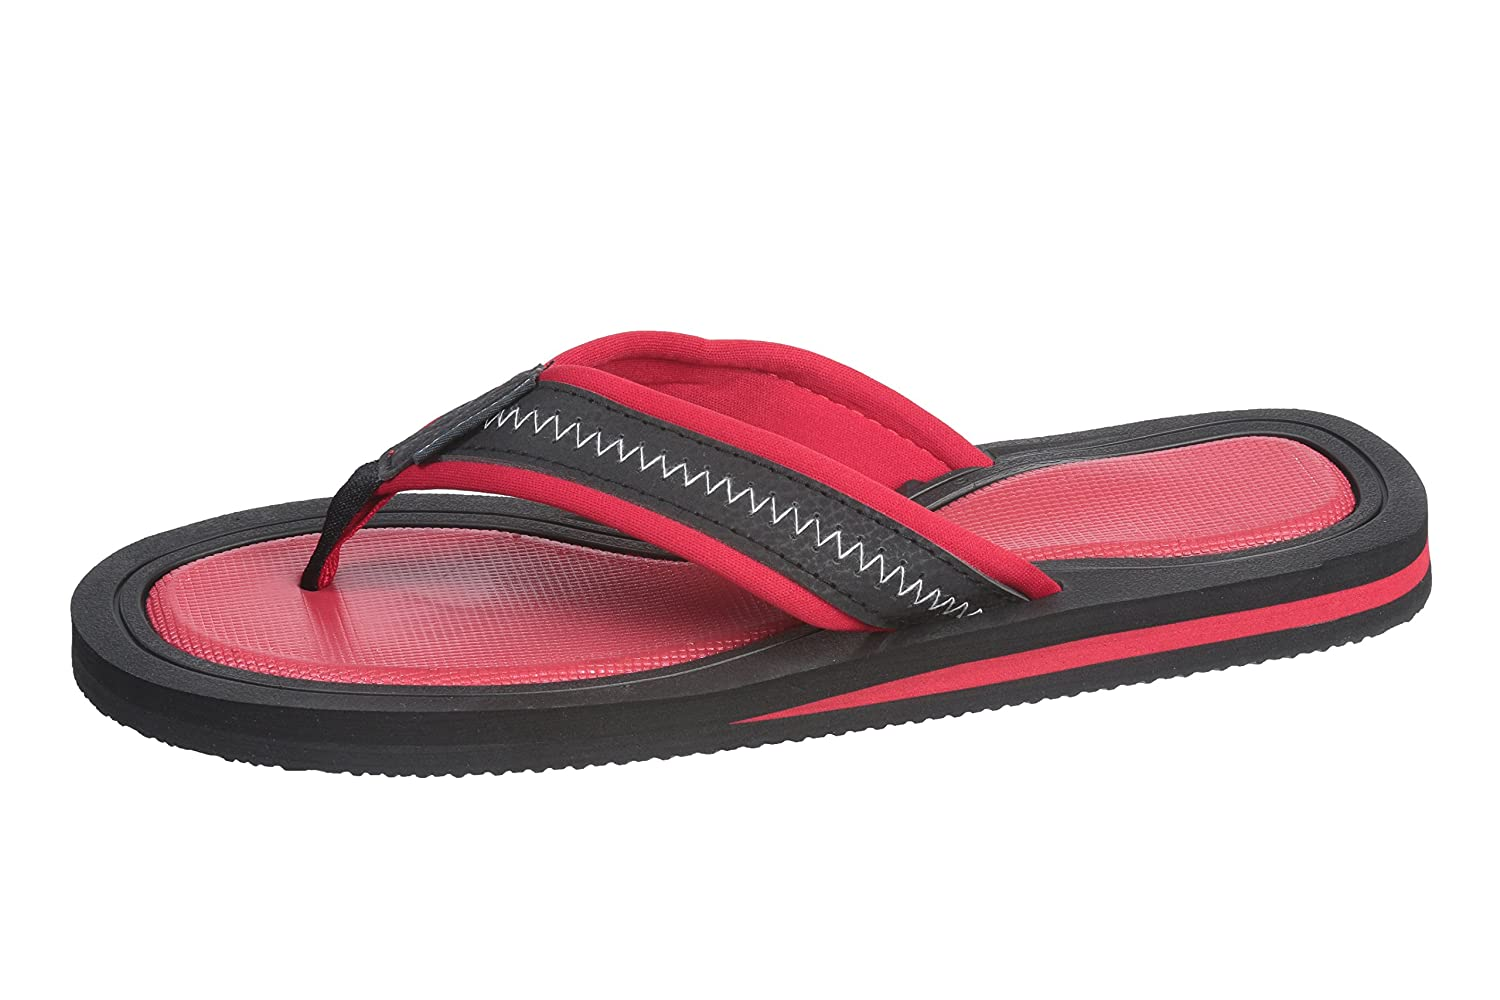 614620ff7 Hendricks Men s Waterproof Thong Flip Flop Beach Sandal  Amazon.ca  Shoes    Handbags